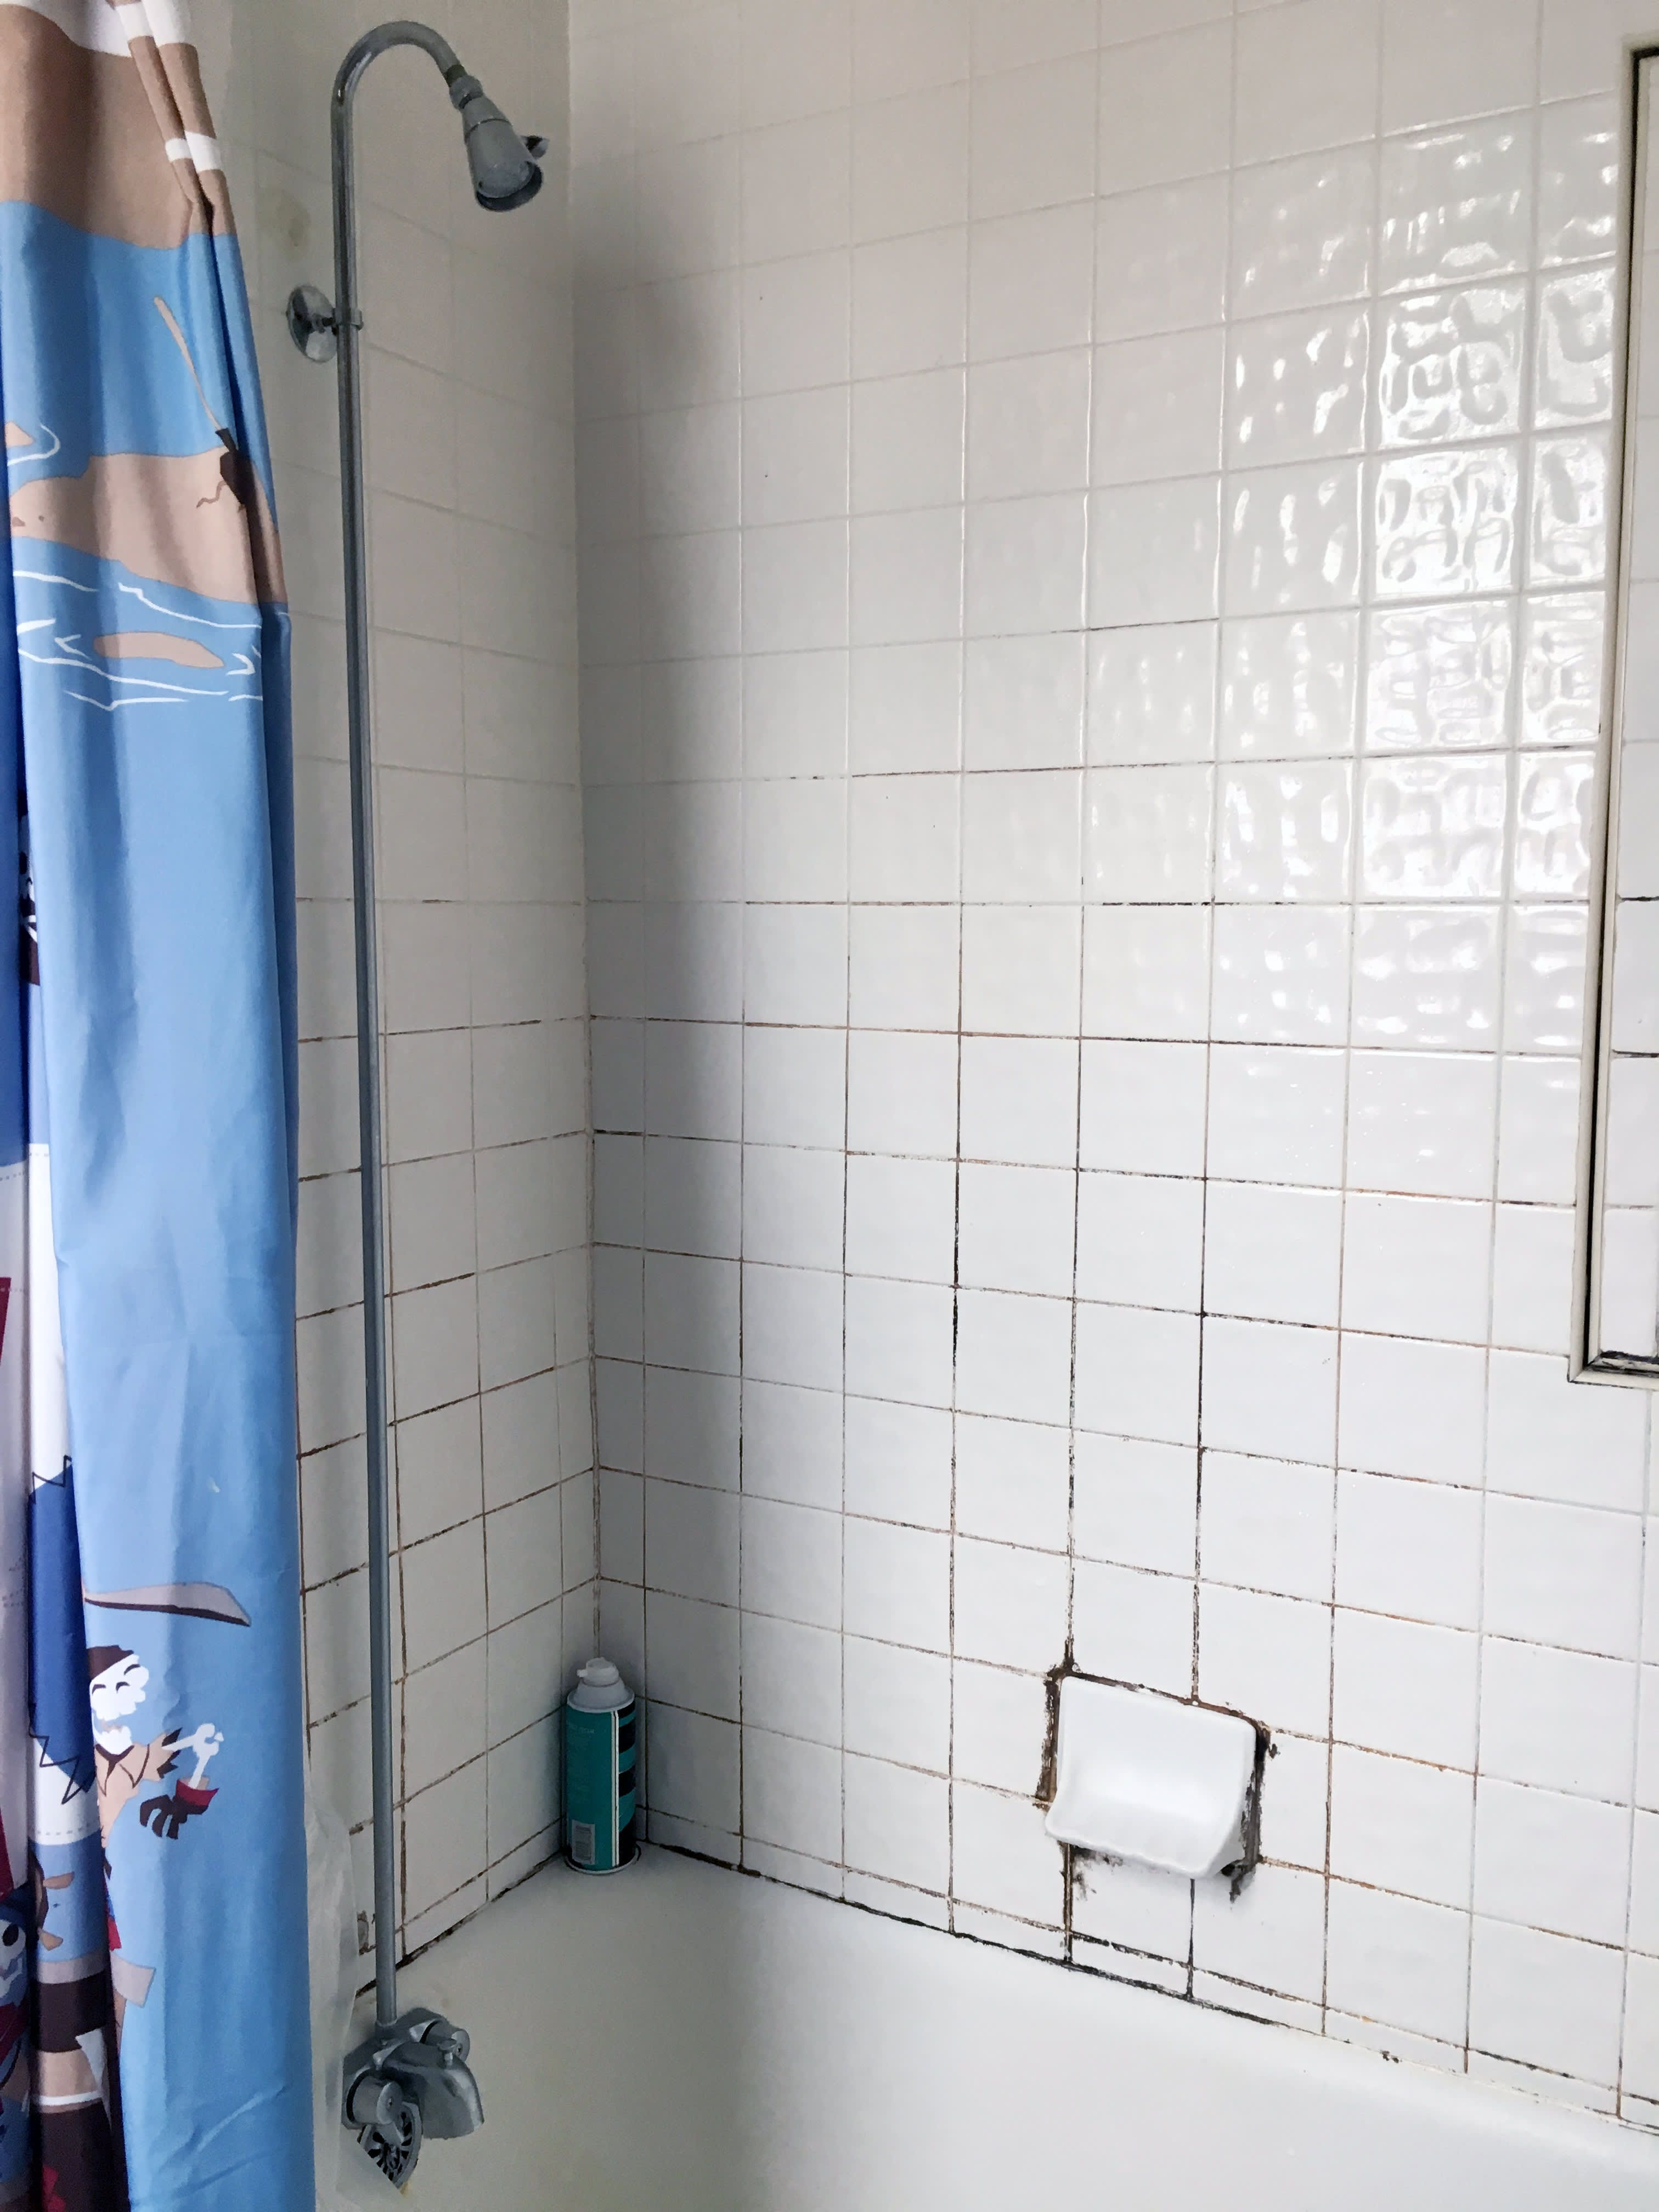 The Best Thing We Did To This Rental Bathroom Was Almost Free Rental Bathroom Cleaning Shower Tiles Shower Tile